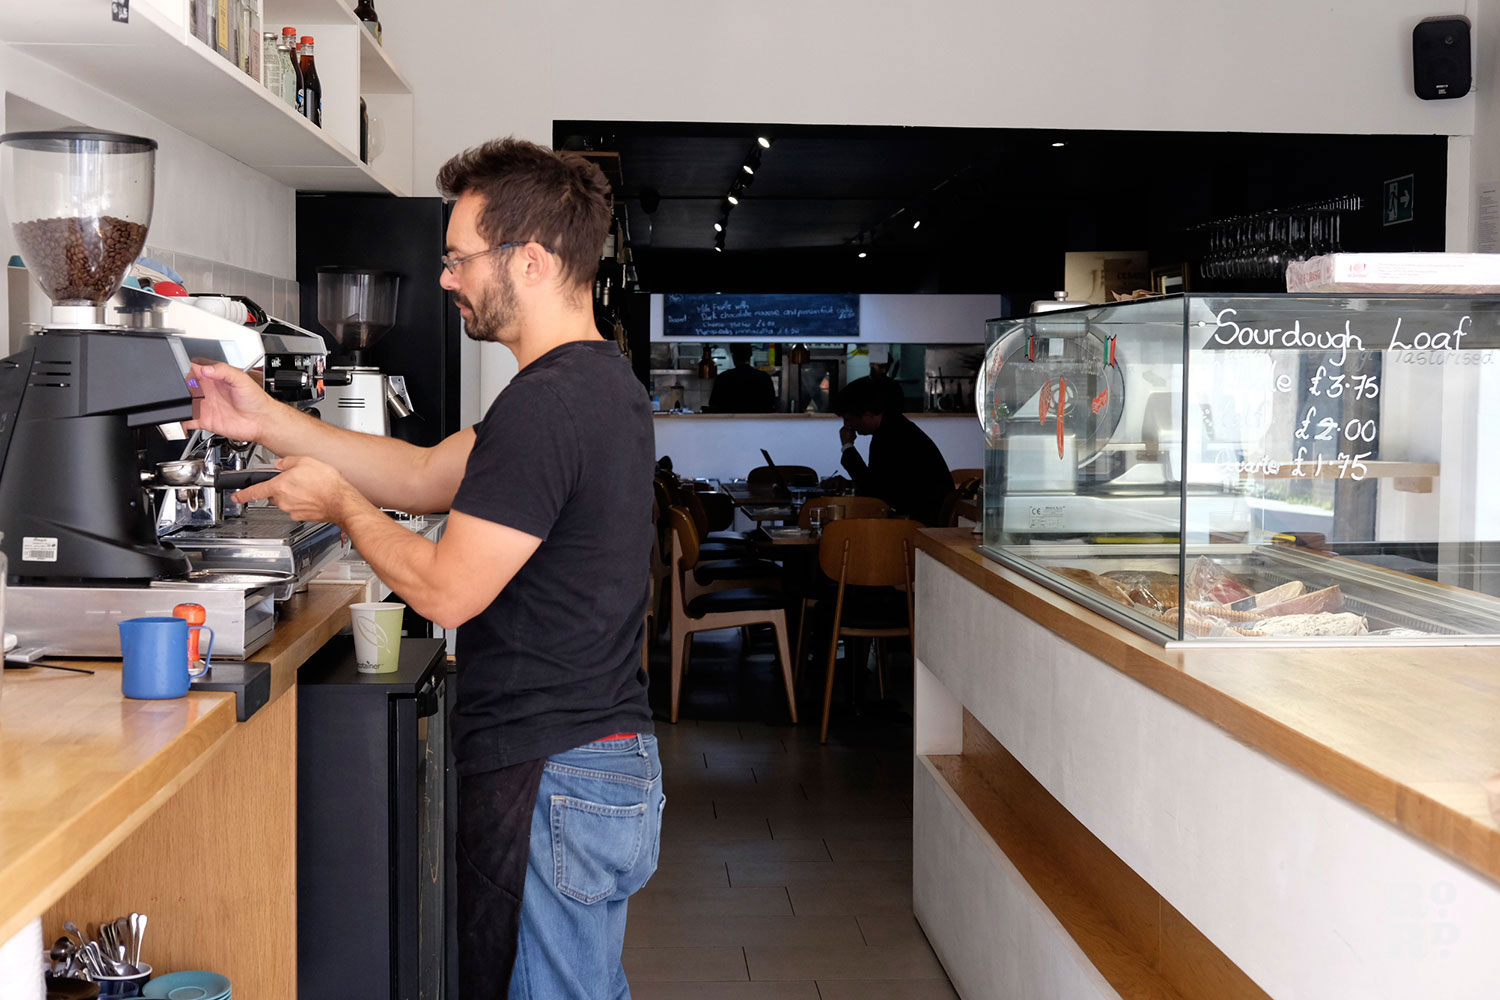 A barista behind a counter making coffee